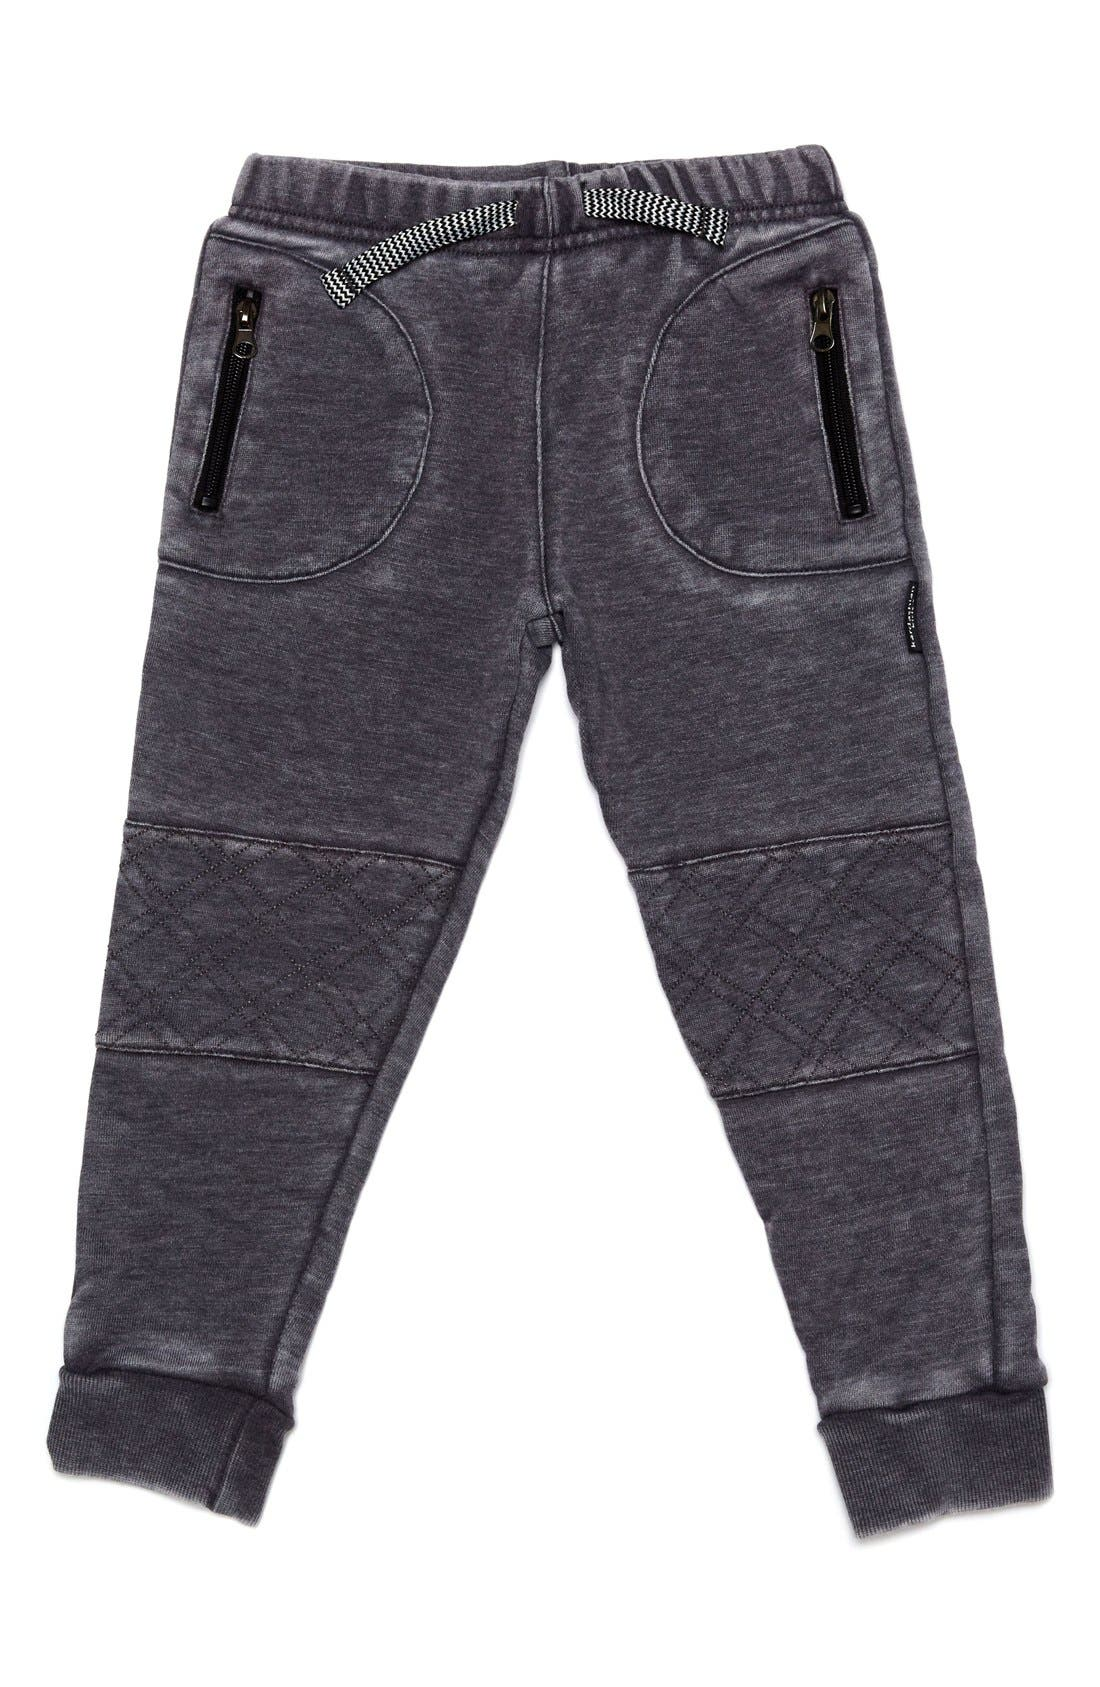 Main Image - Kardashian Kids Quilted Jogger Pants (Toddler Boys & Little Boys)